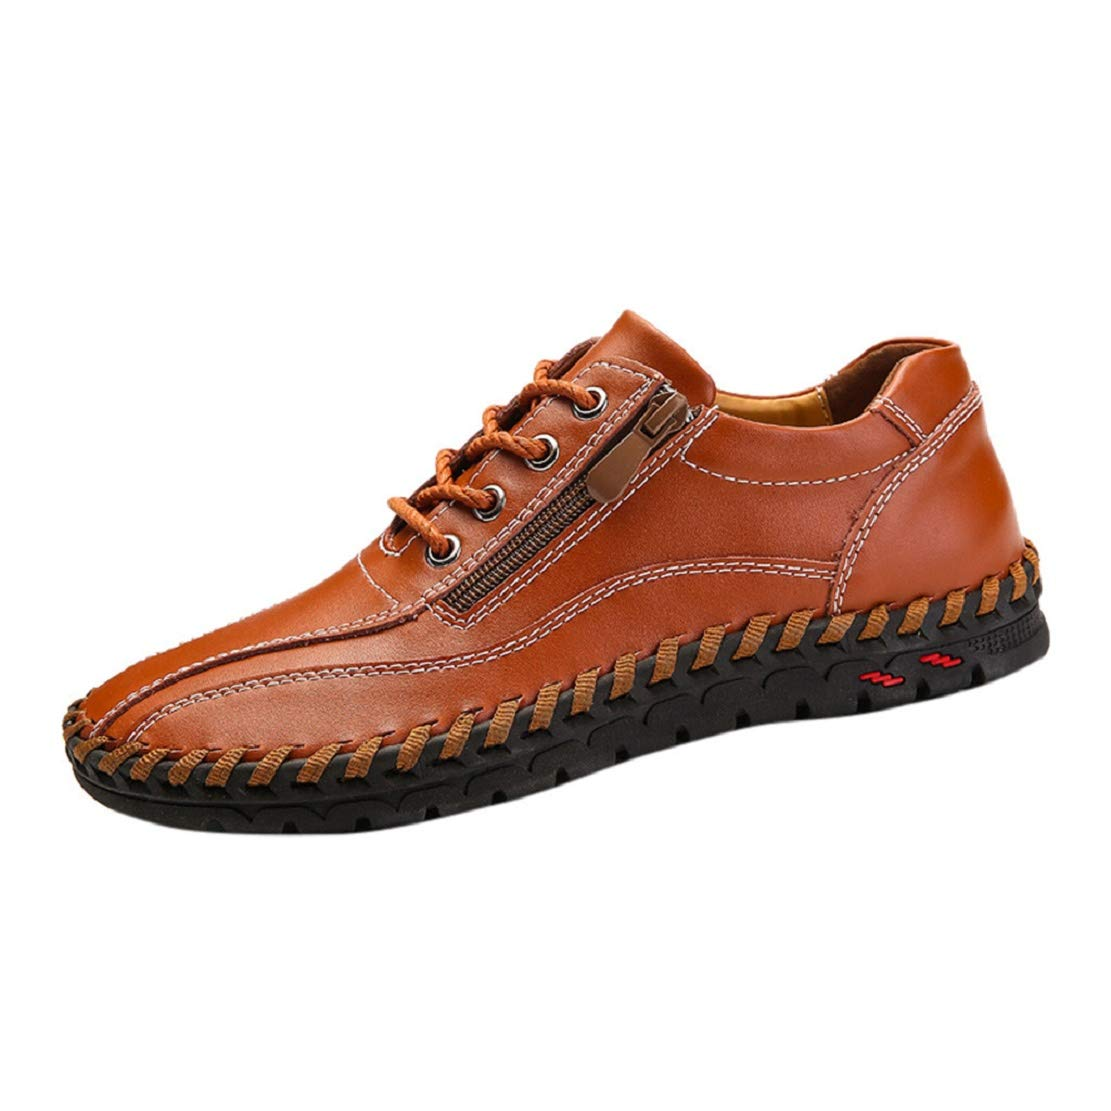 Men's Fashion Stitched Leather Sneakers Driving Oxford Slip On Loafers Side Zipper Comfort Walking Shoes by Lowprofile Brown